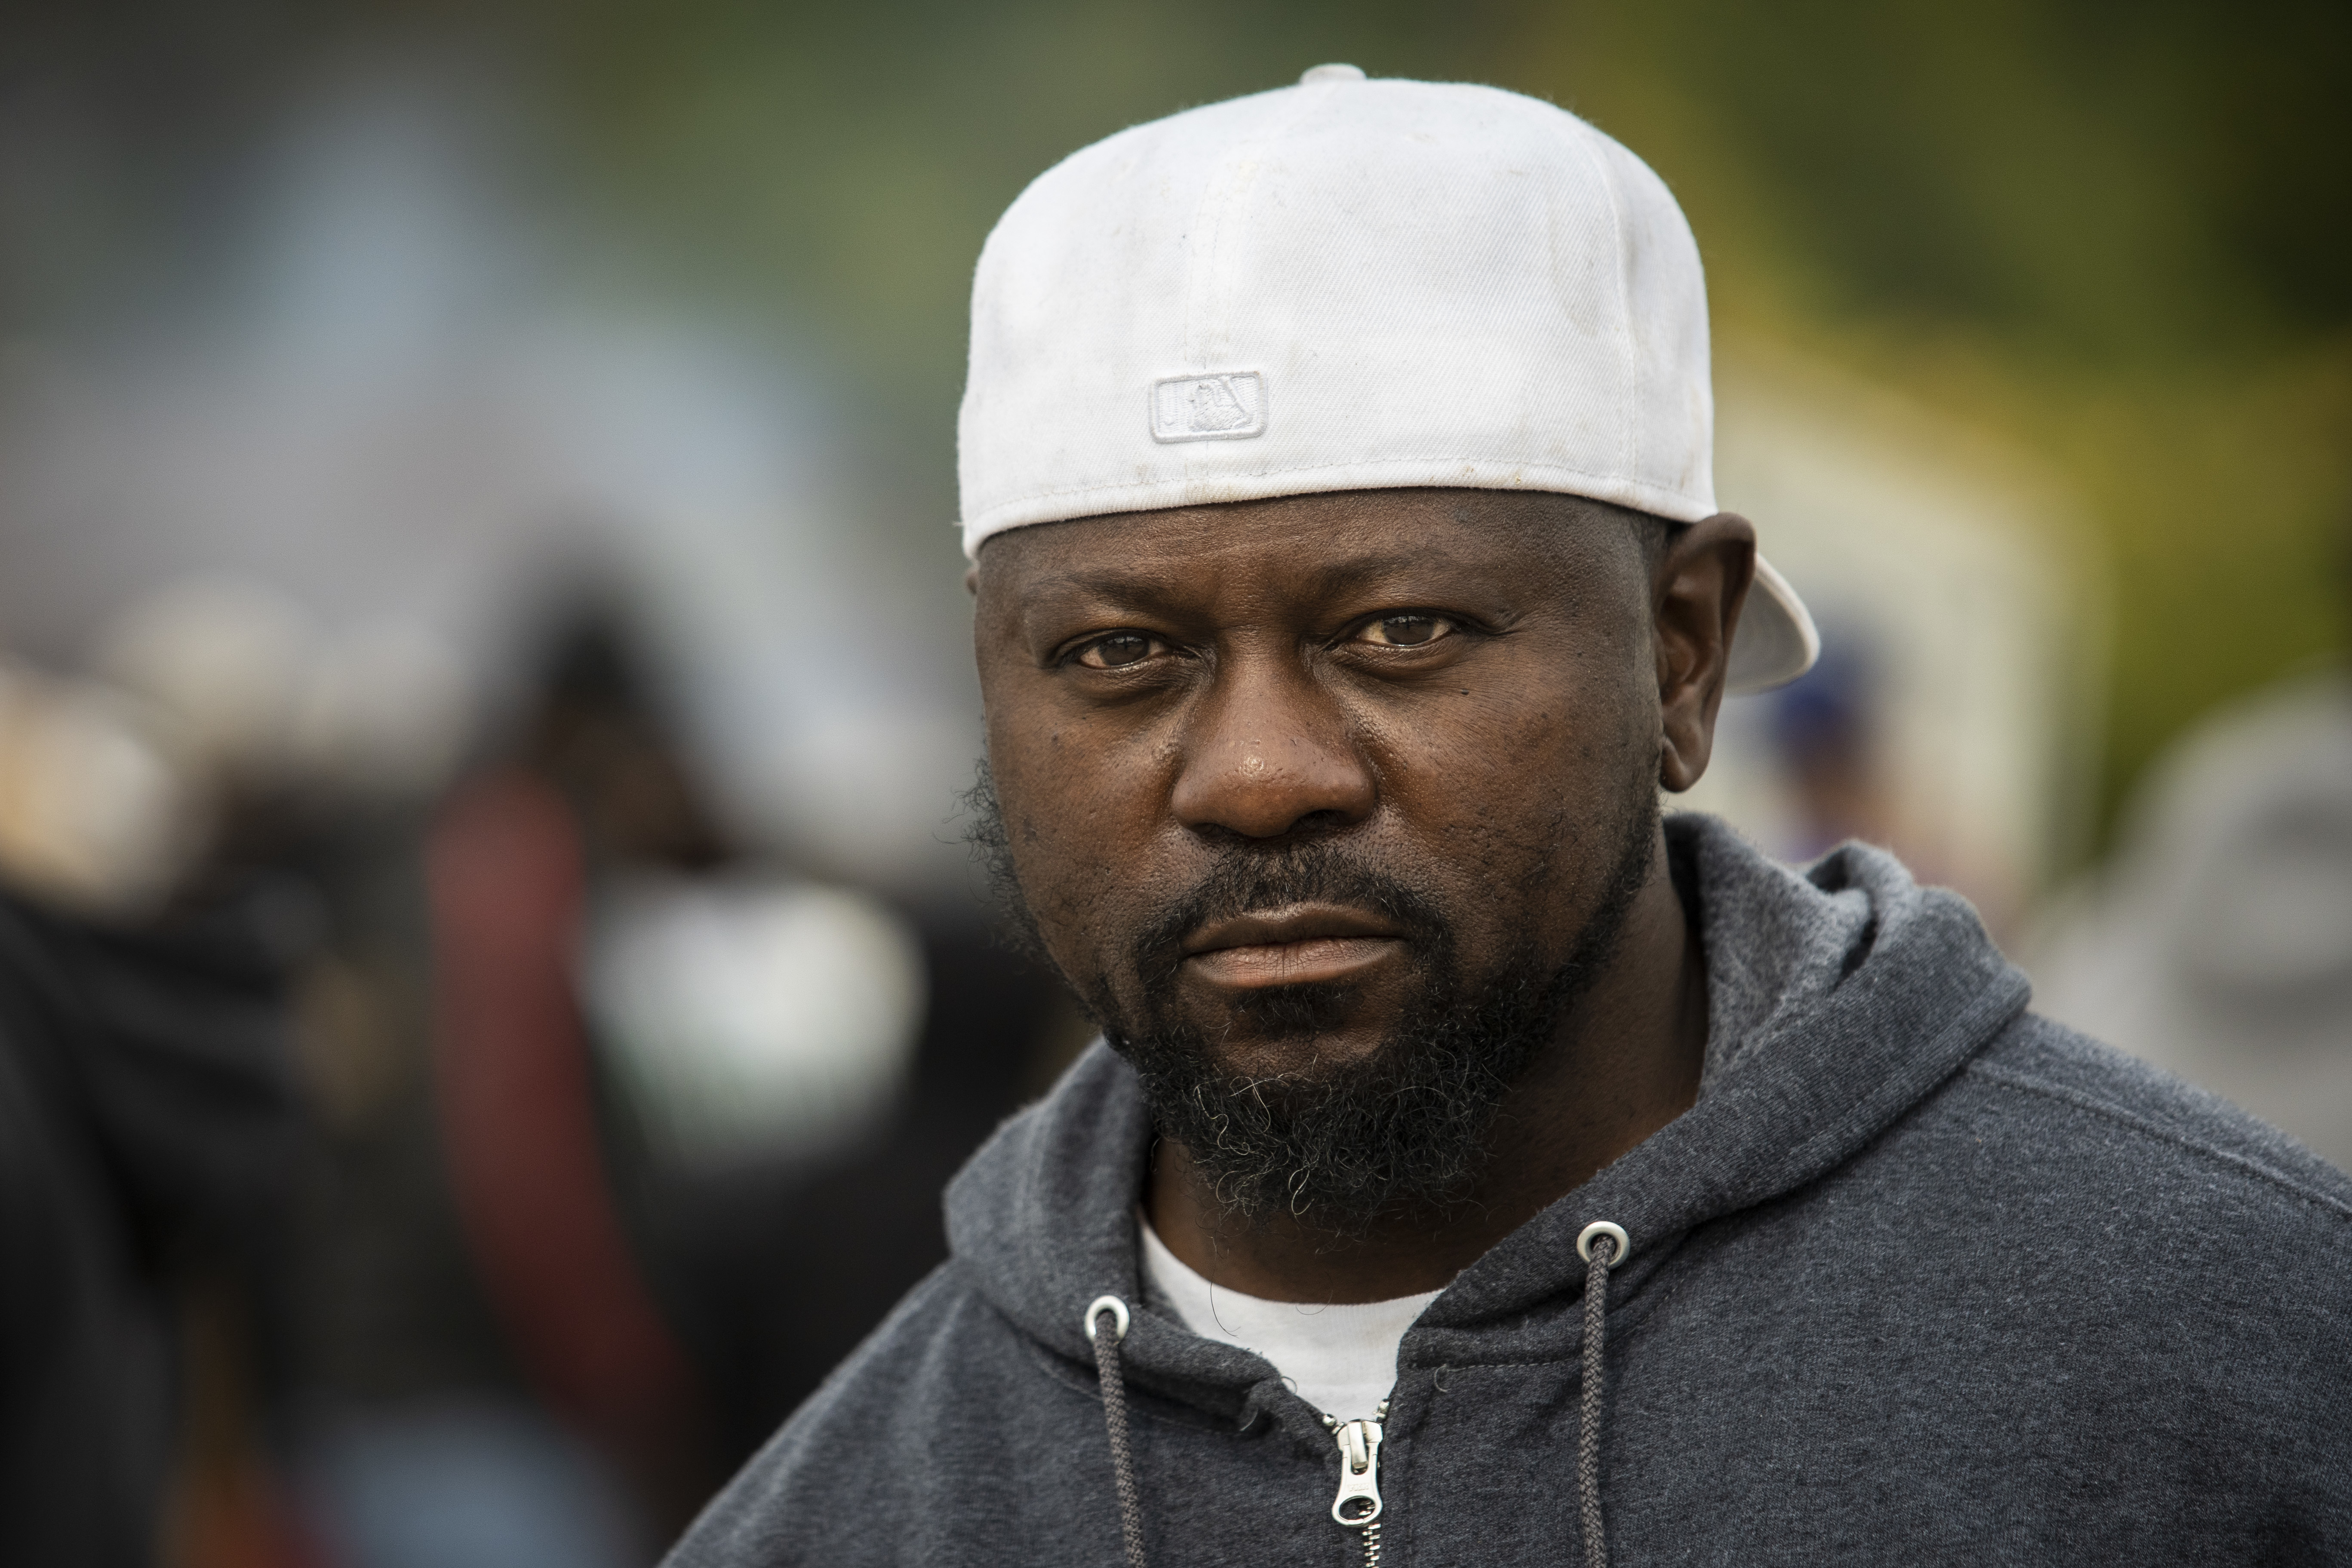 James Yates, a former high-ranking member of the Gangster Disciples, formed the Revitalization of Robbins Initiative after his life prison sentence was overturned and he was released in April under the federal First Step Act.